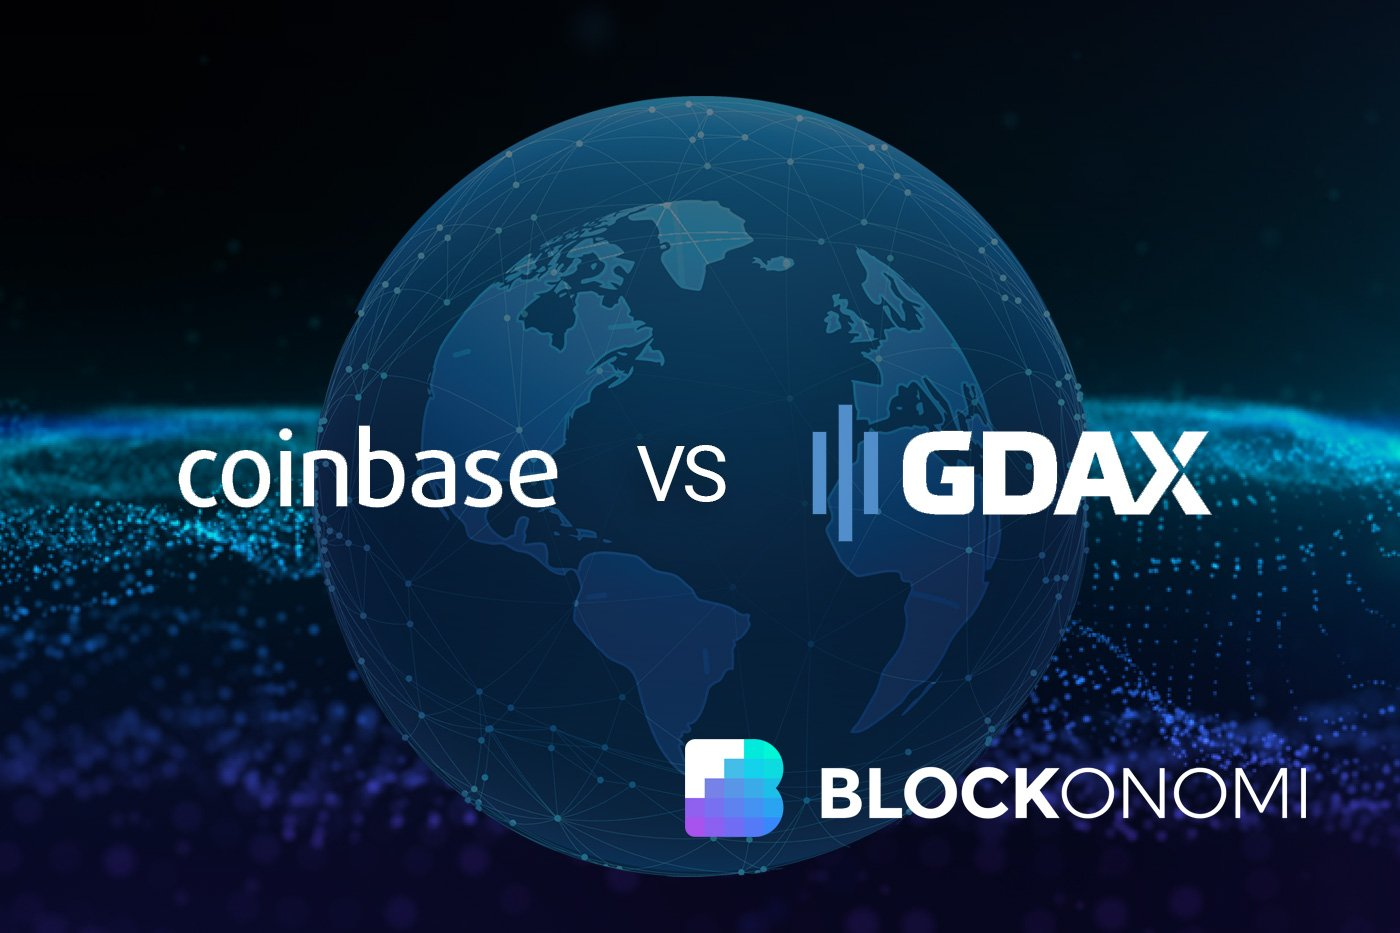 Coinbase vs GDAX Review